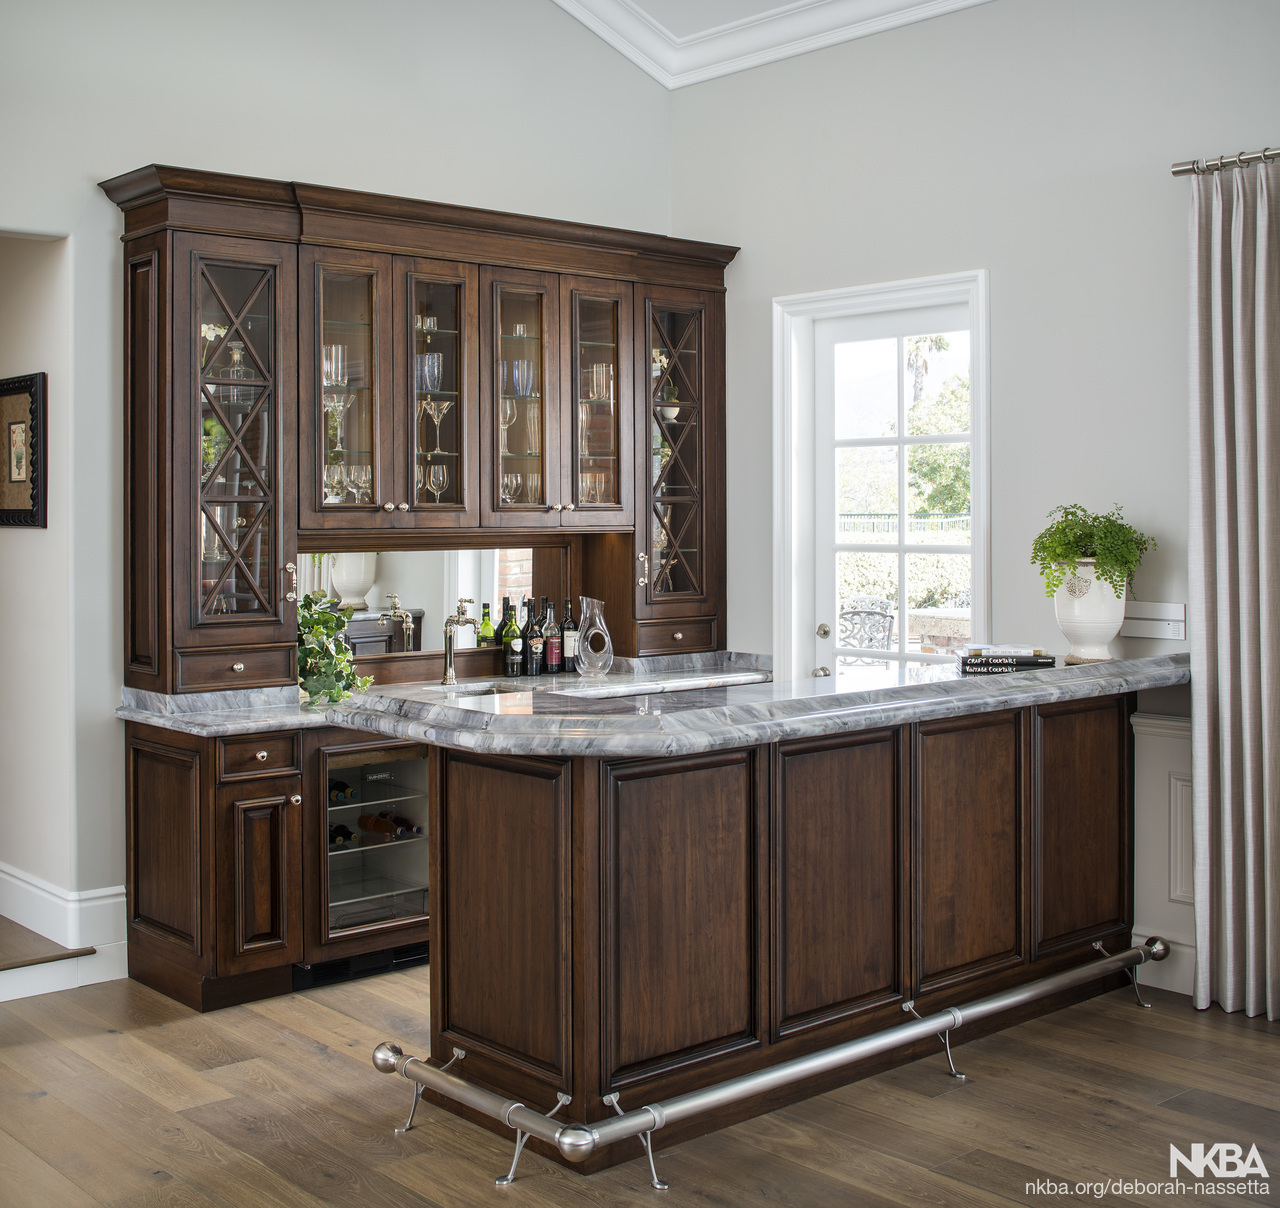 Home Entertainment Bar Traditional Kitchen